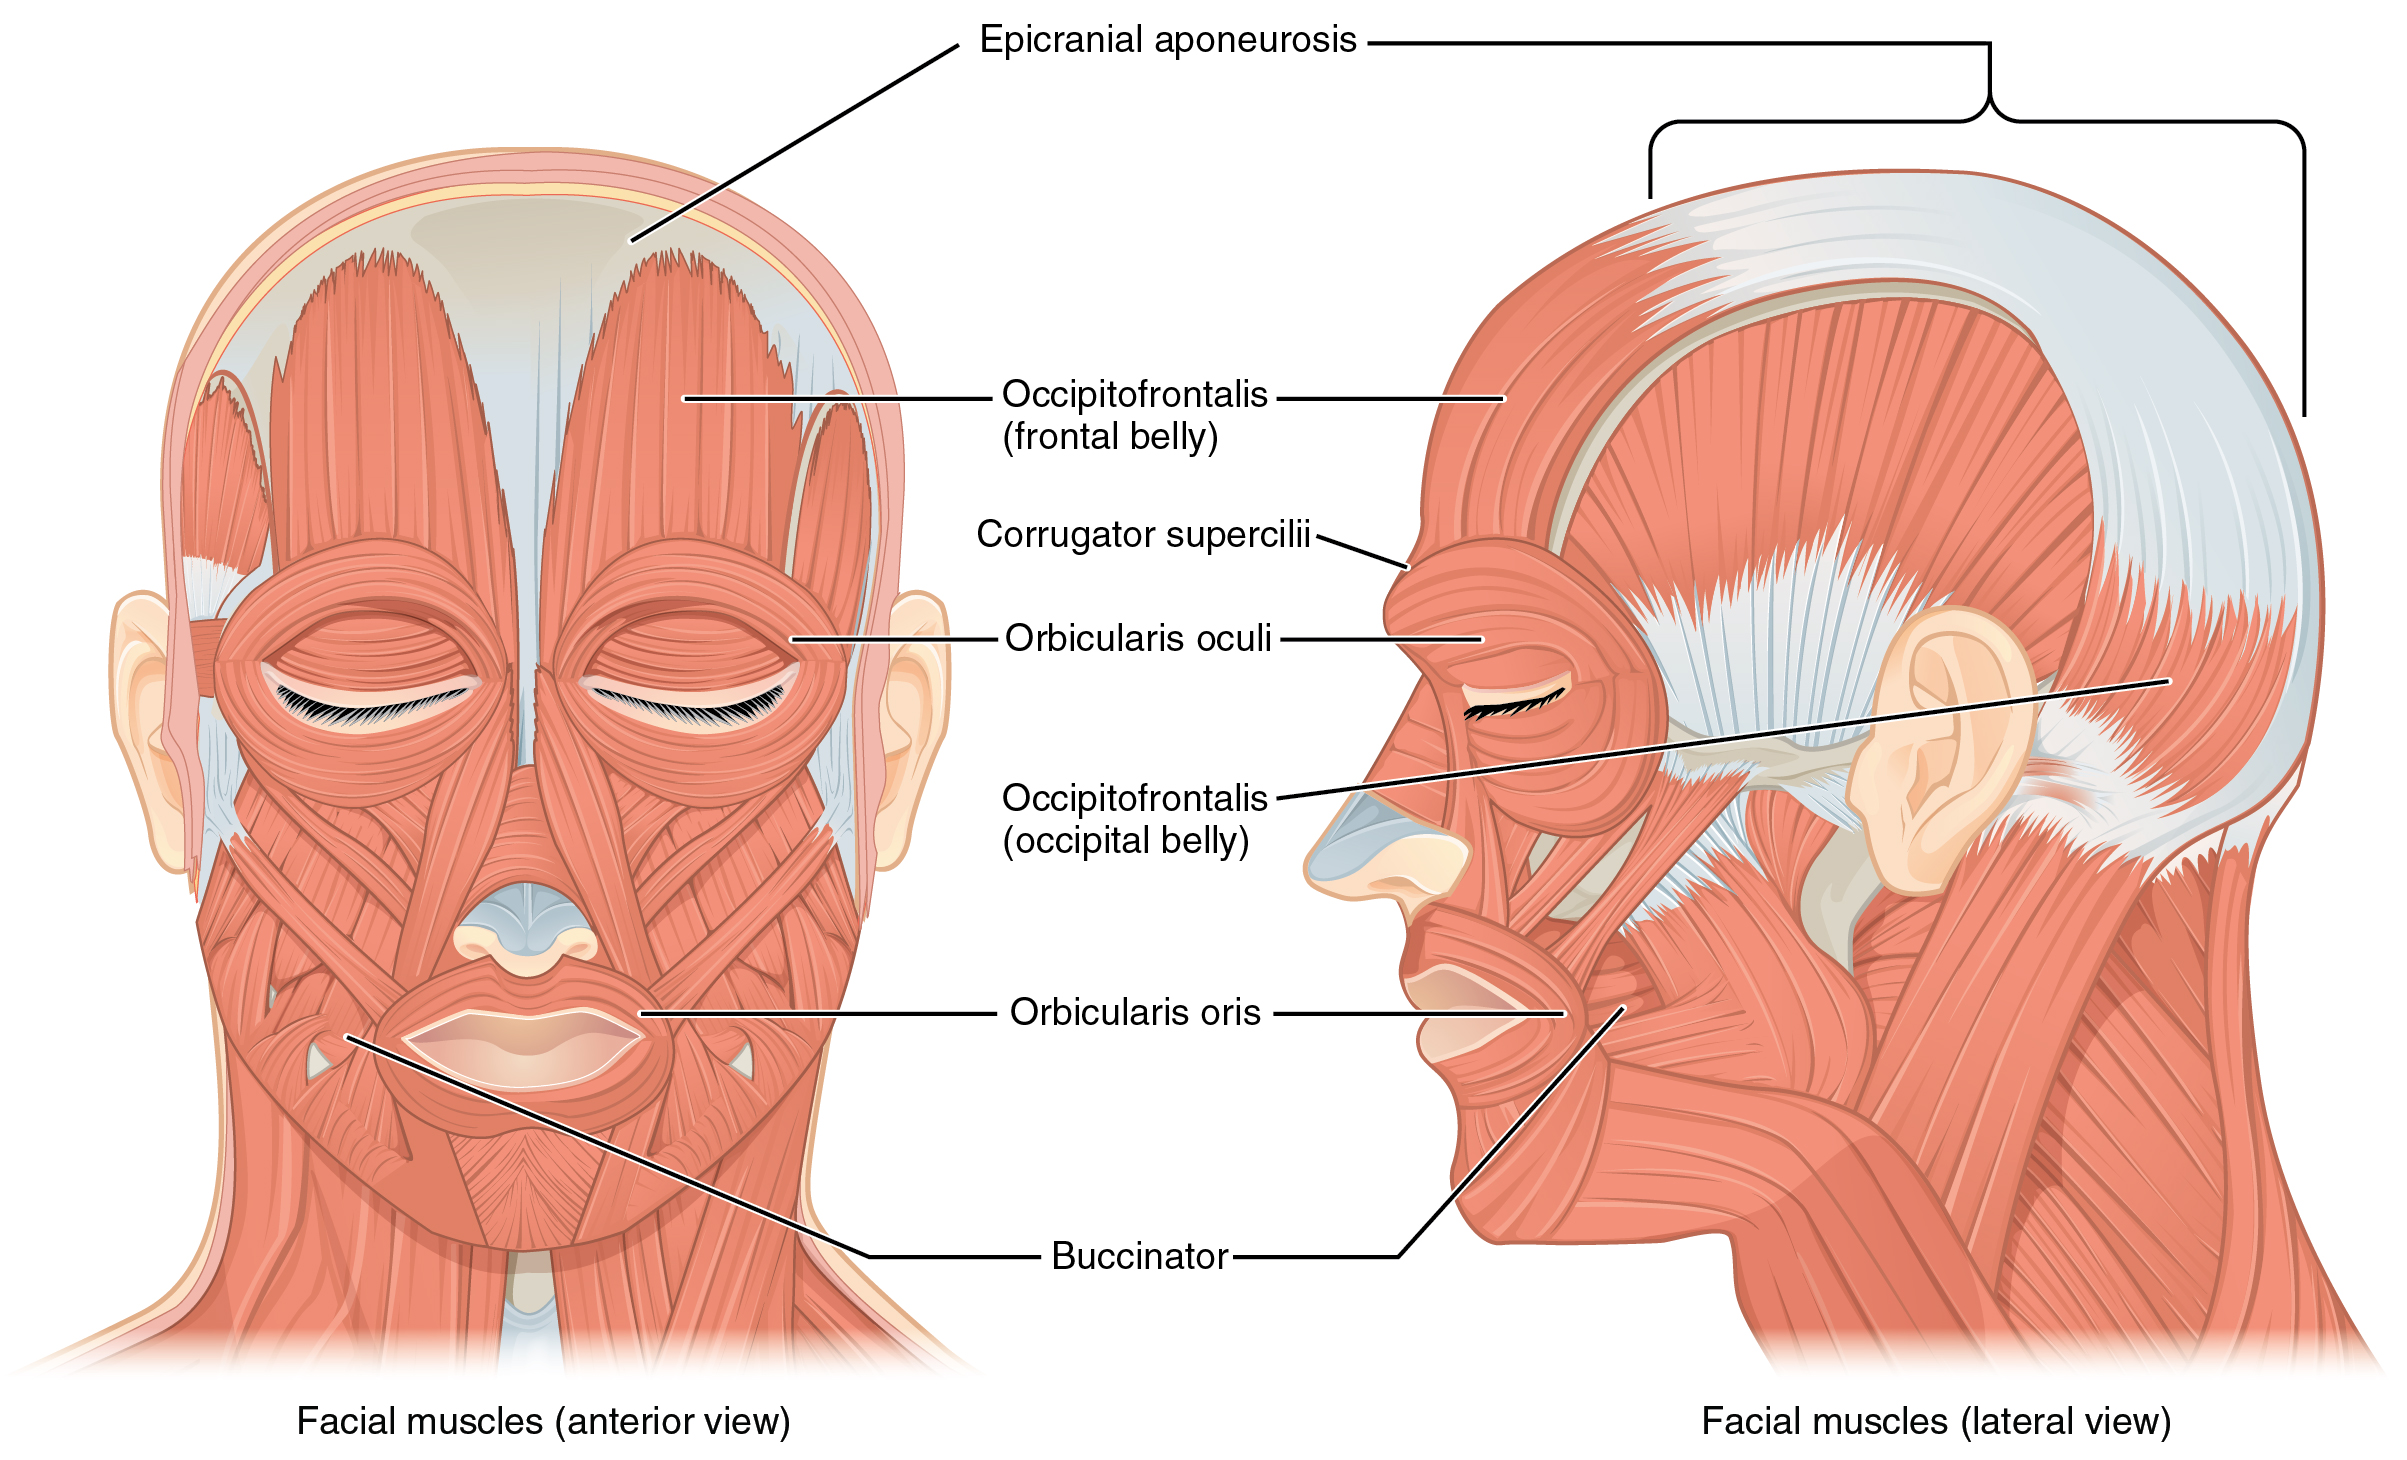 The left panel in this figure shows the anterior view of the facial muscles, and the right panel shows the lateral view.